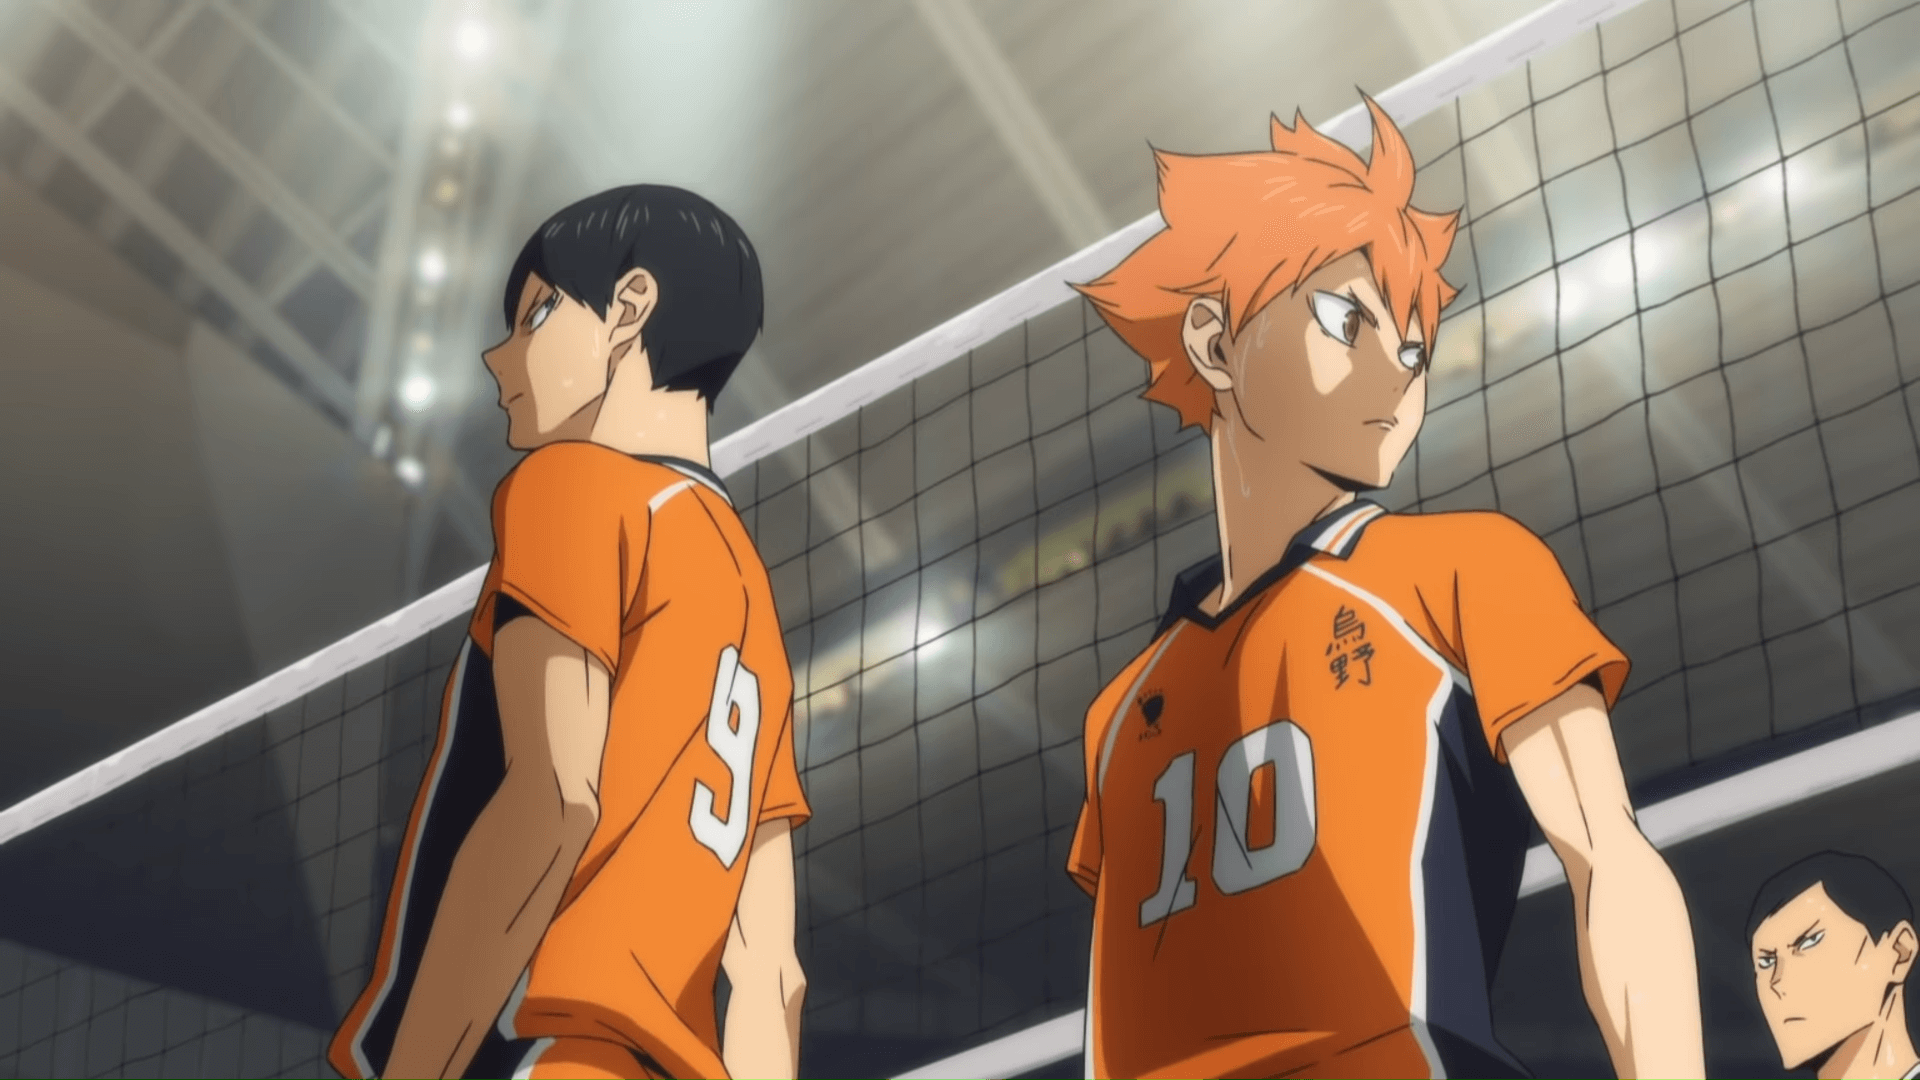 Haikyu!! Season 4 Returns for the 2nd Cour this October!